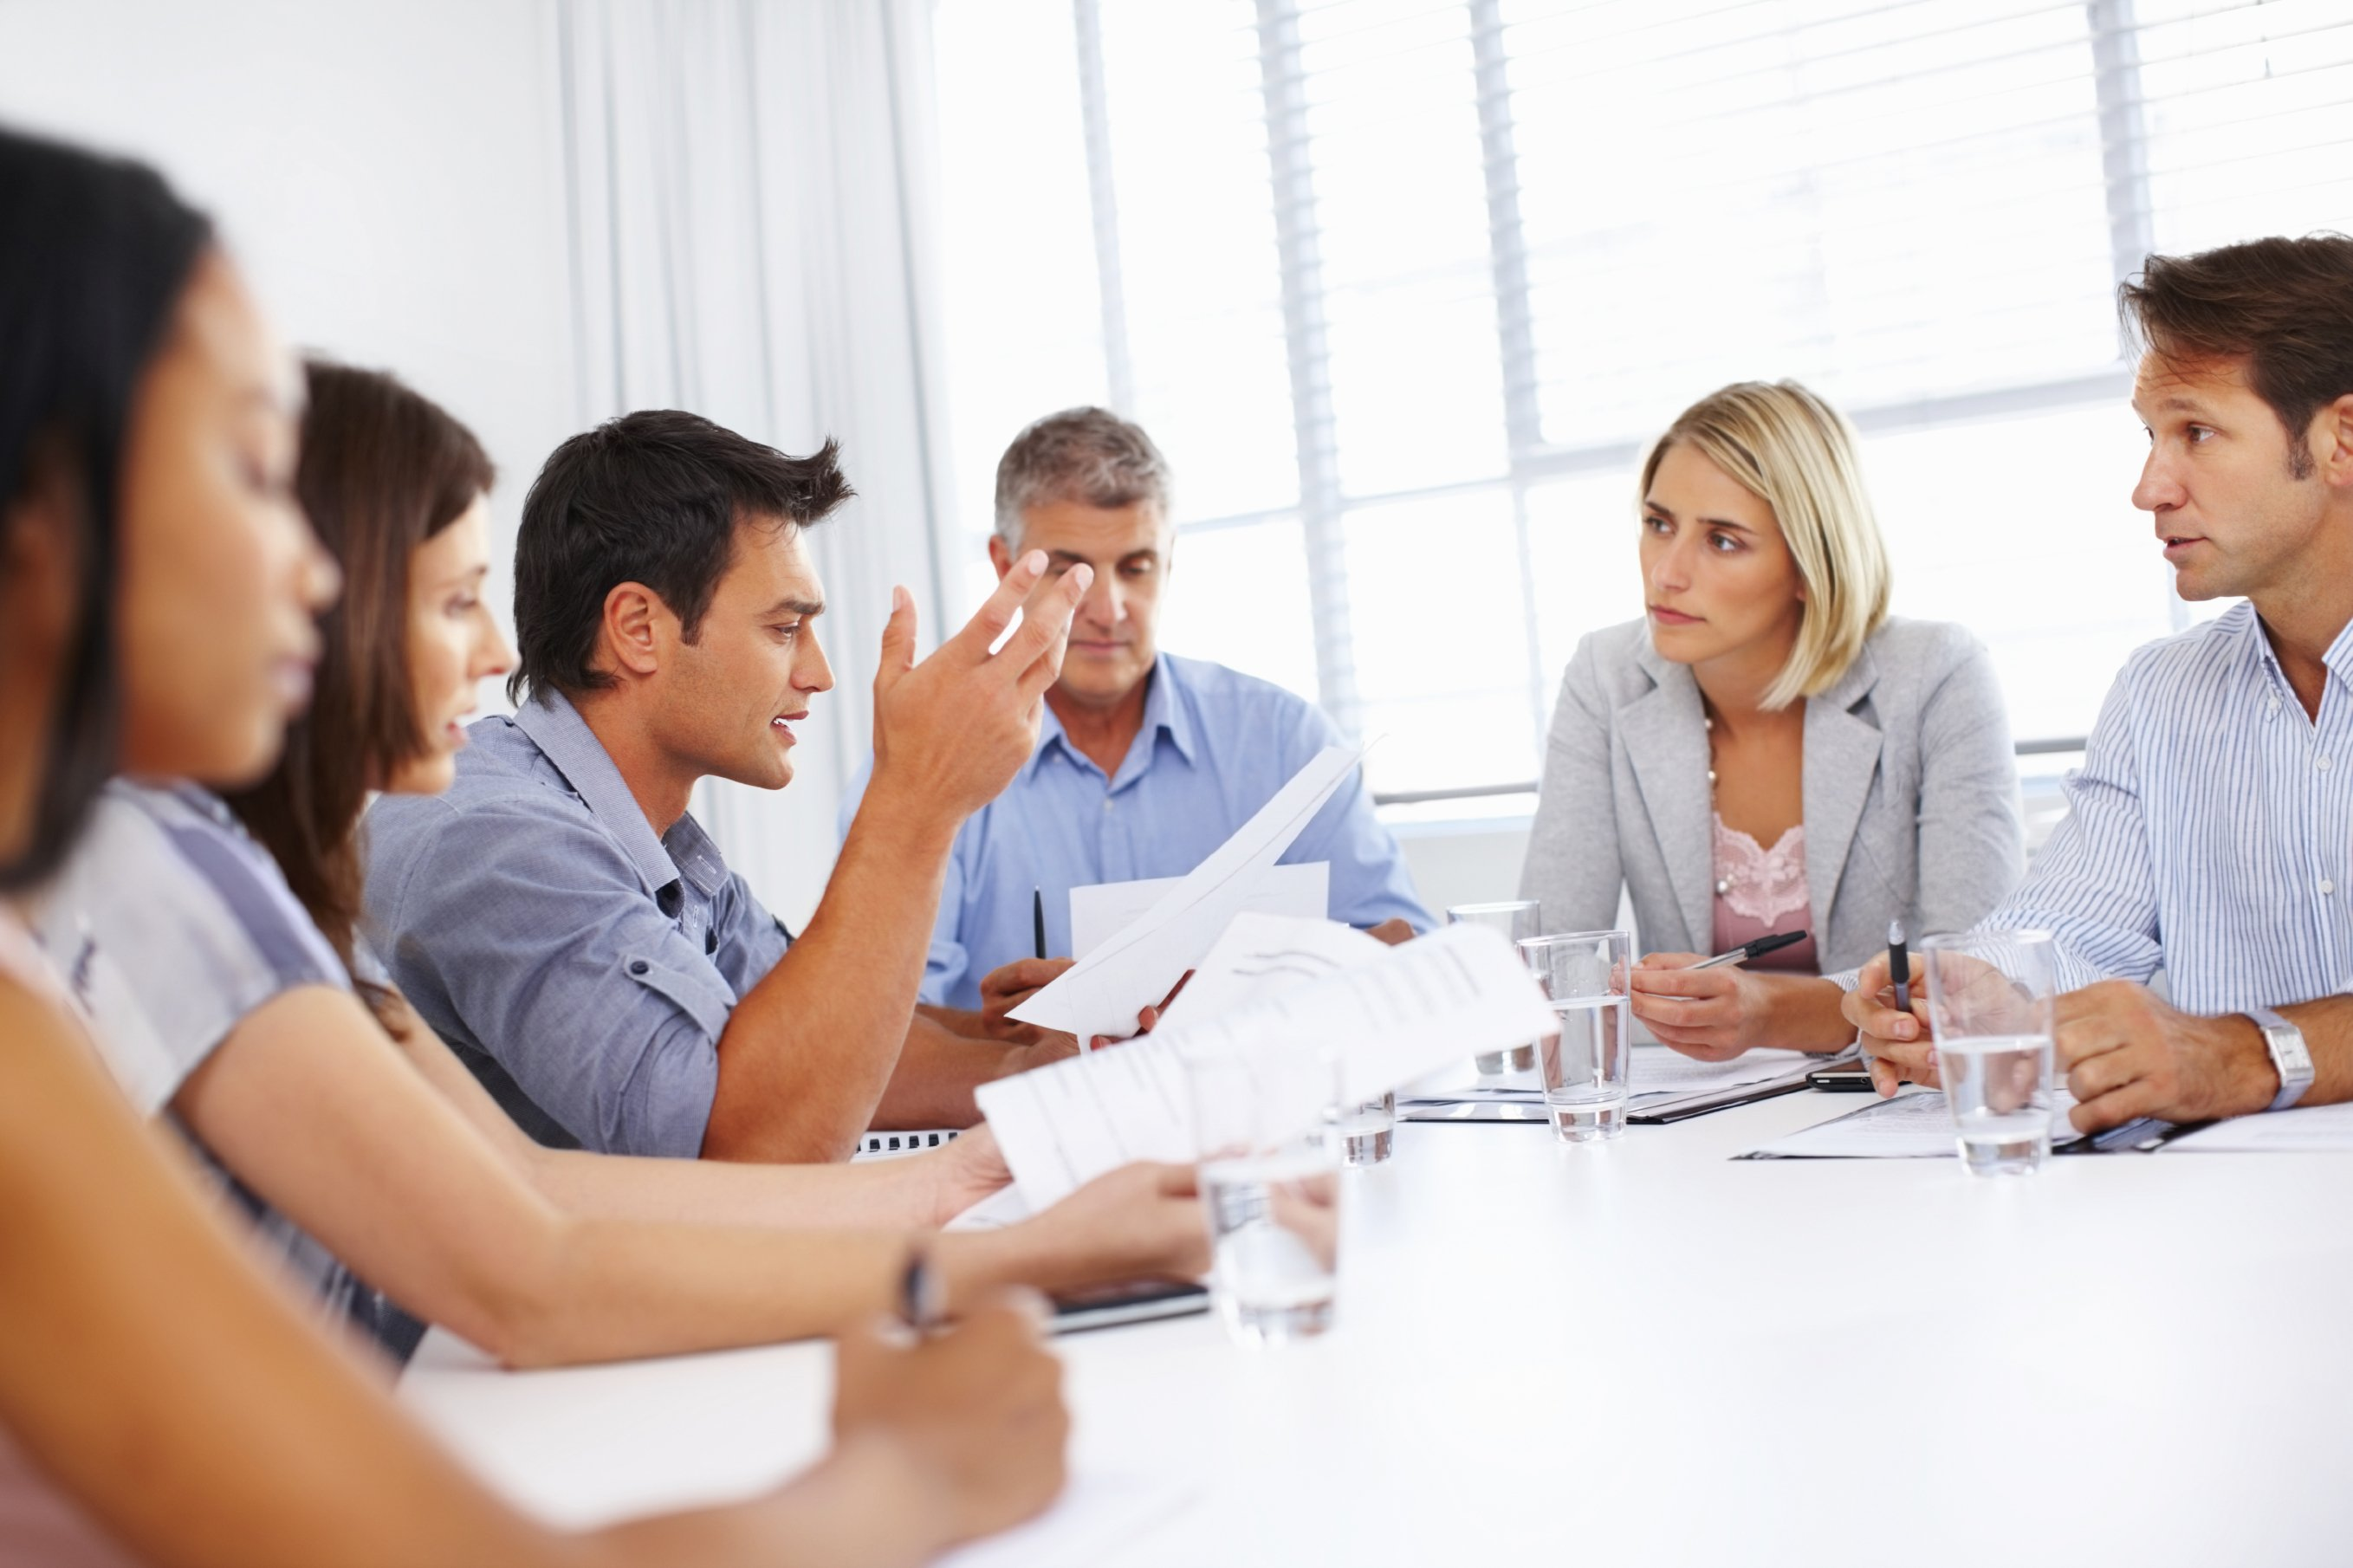 Meetings, meetings, meetings!  Are they positioned correctly?